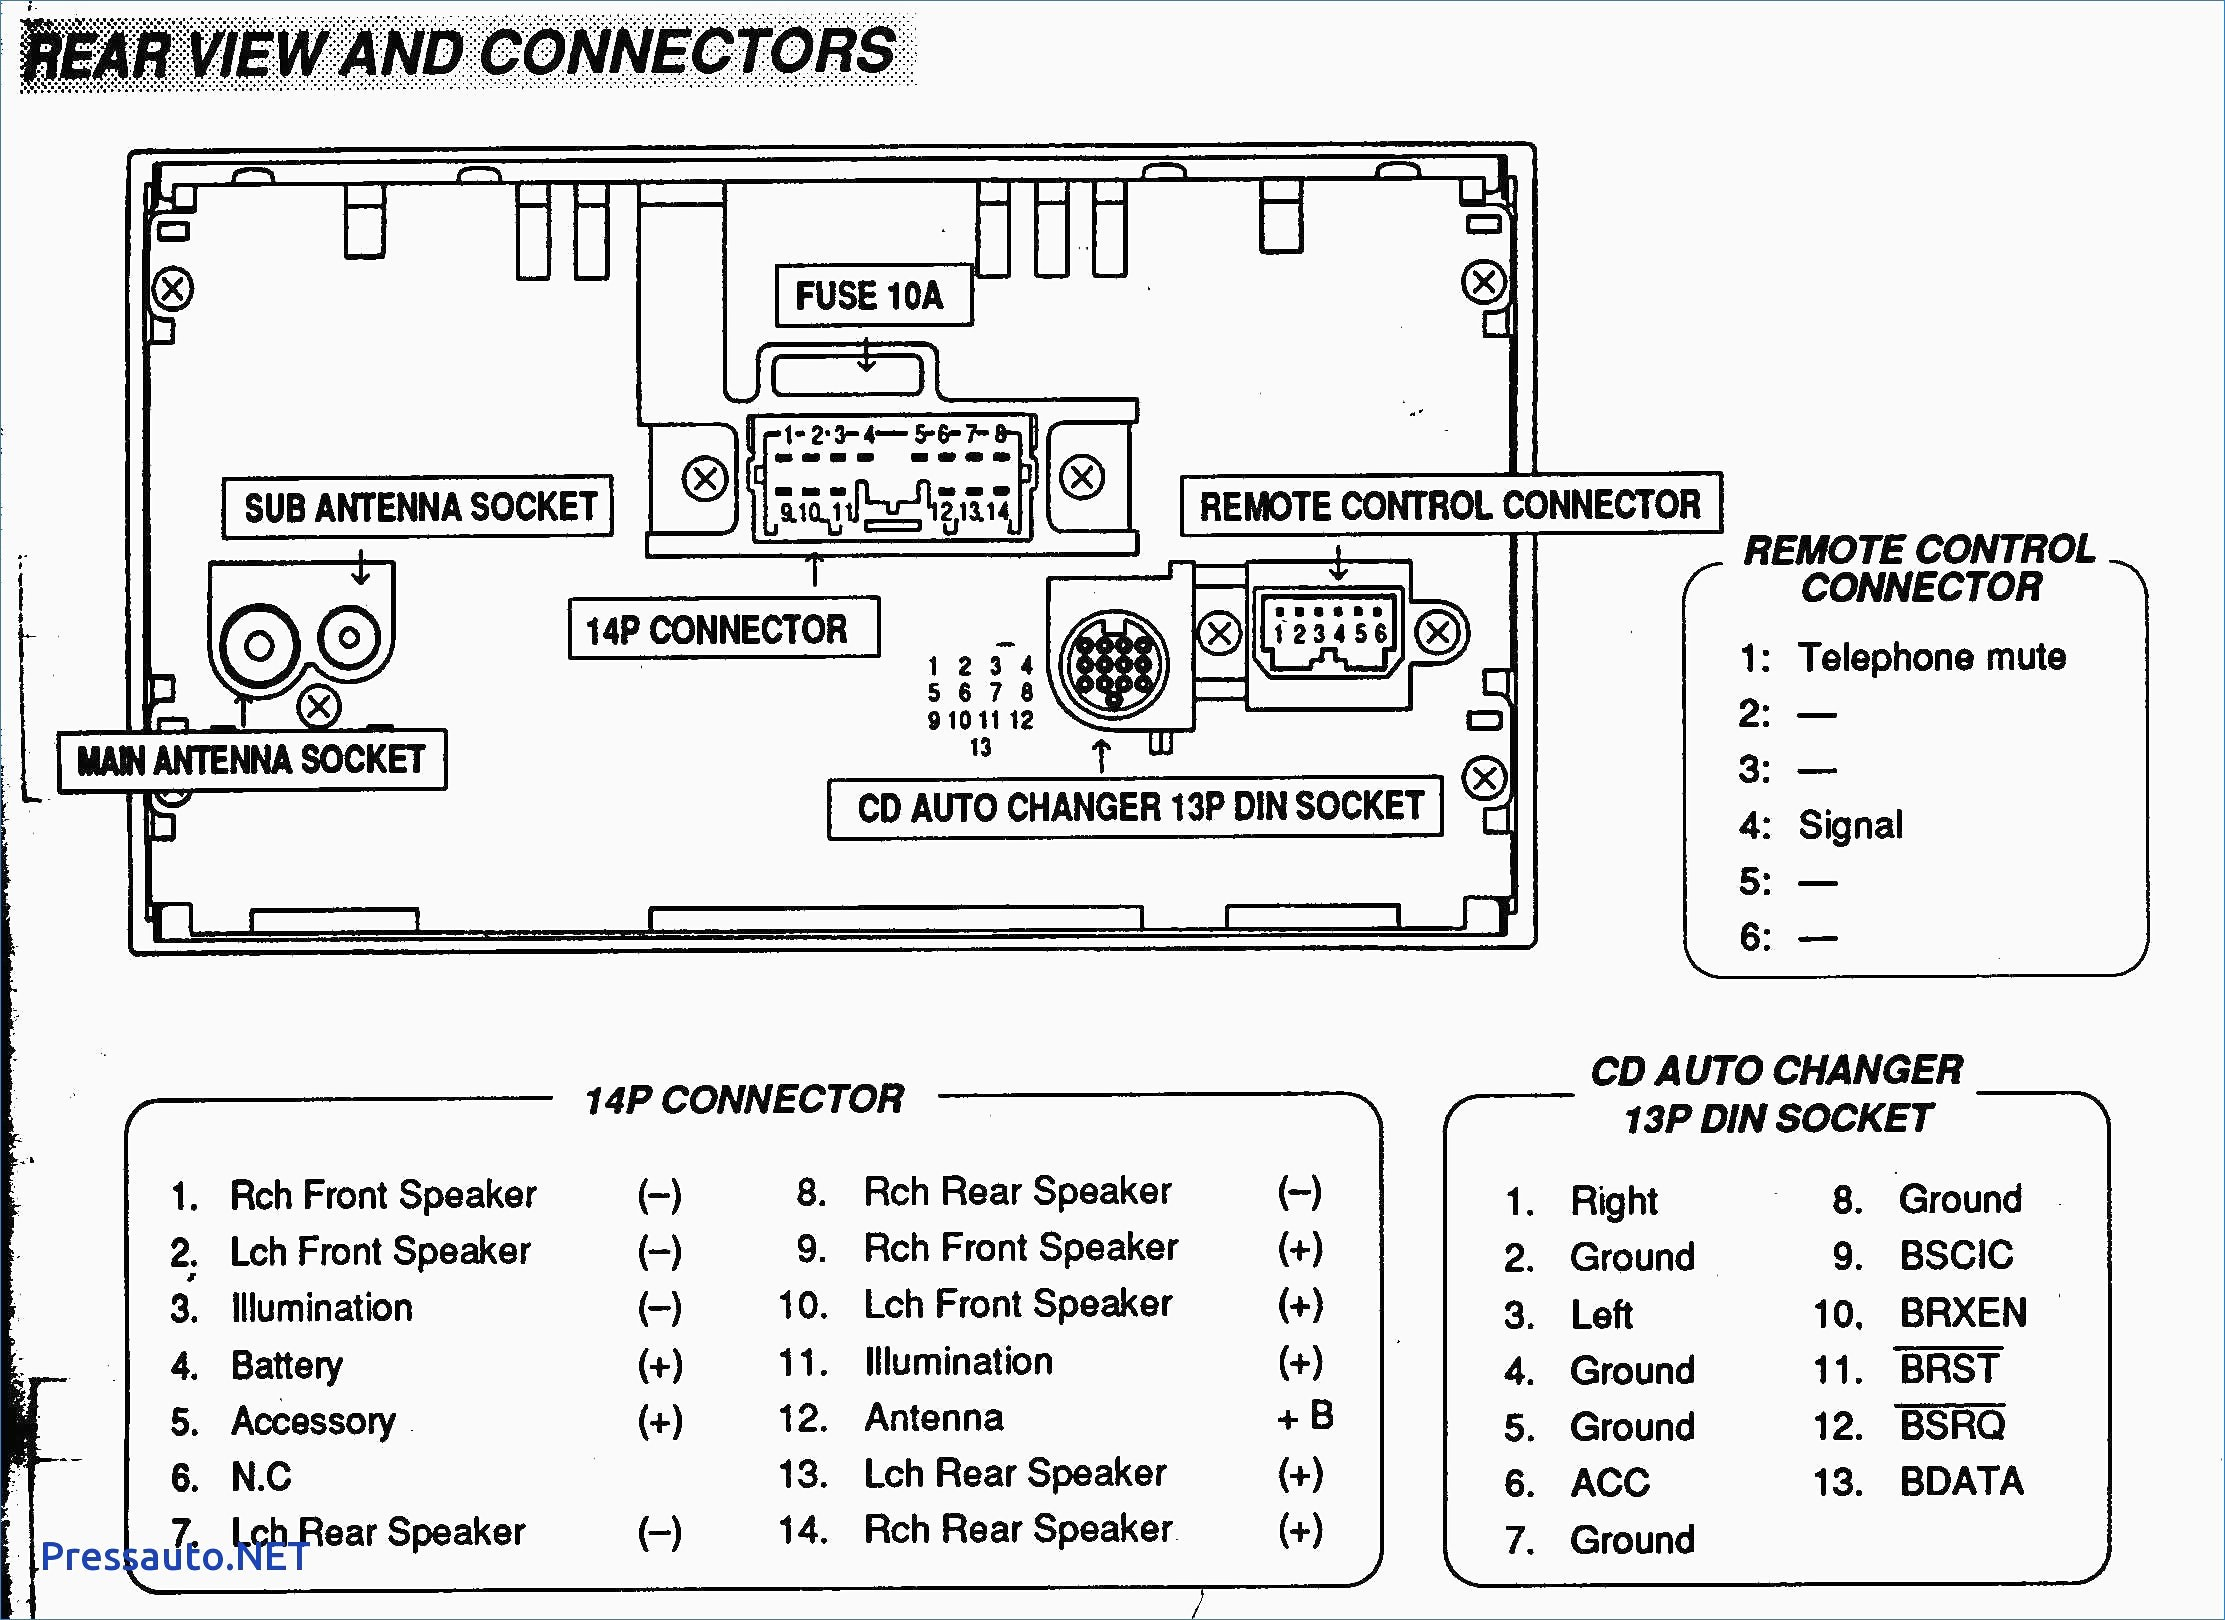 Wiring Diagram for Guitar Speaker Cabinet Fresh How to Wire A 5 Channel Amp Diagram How